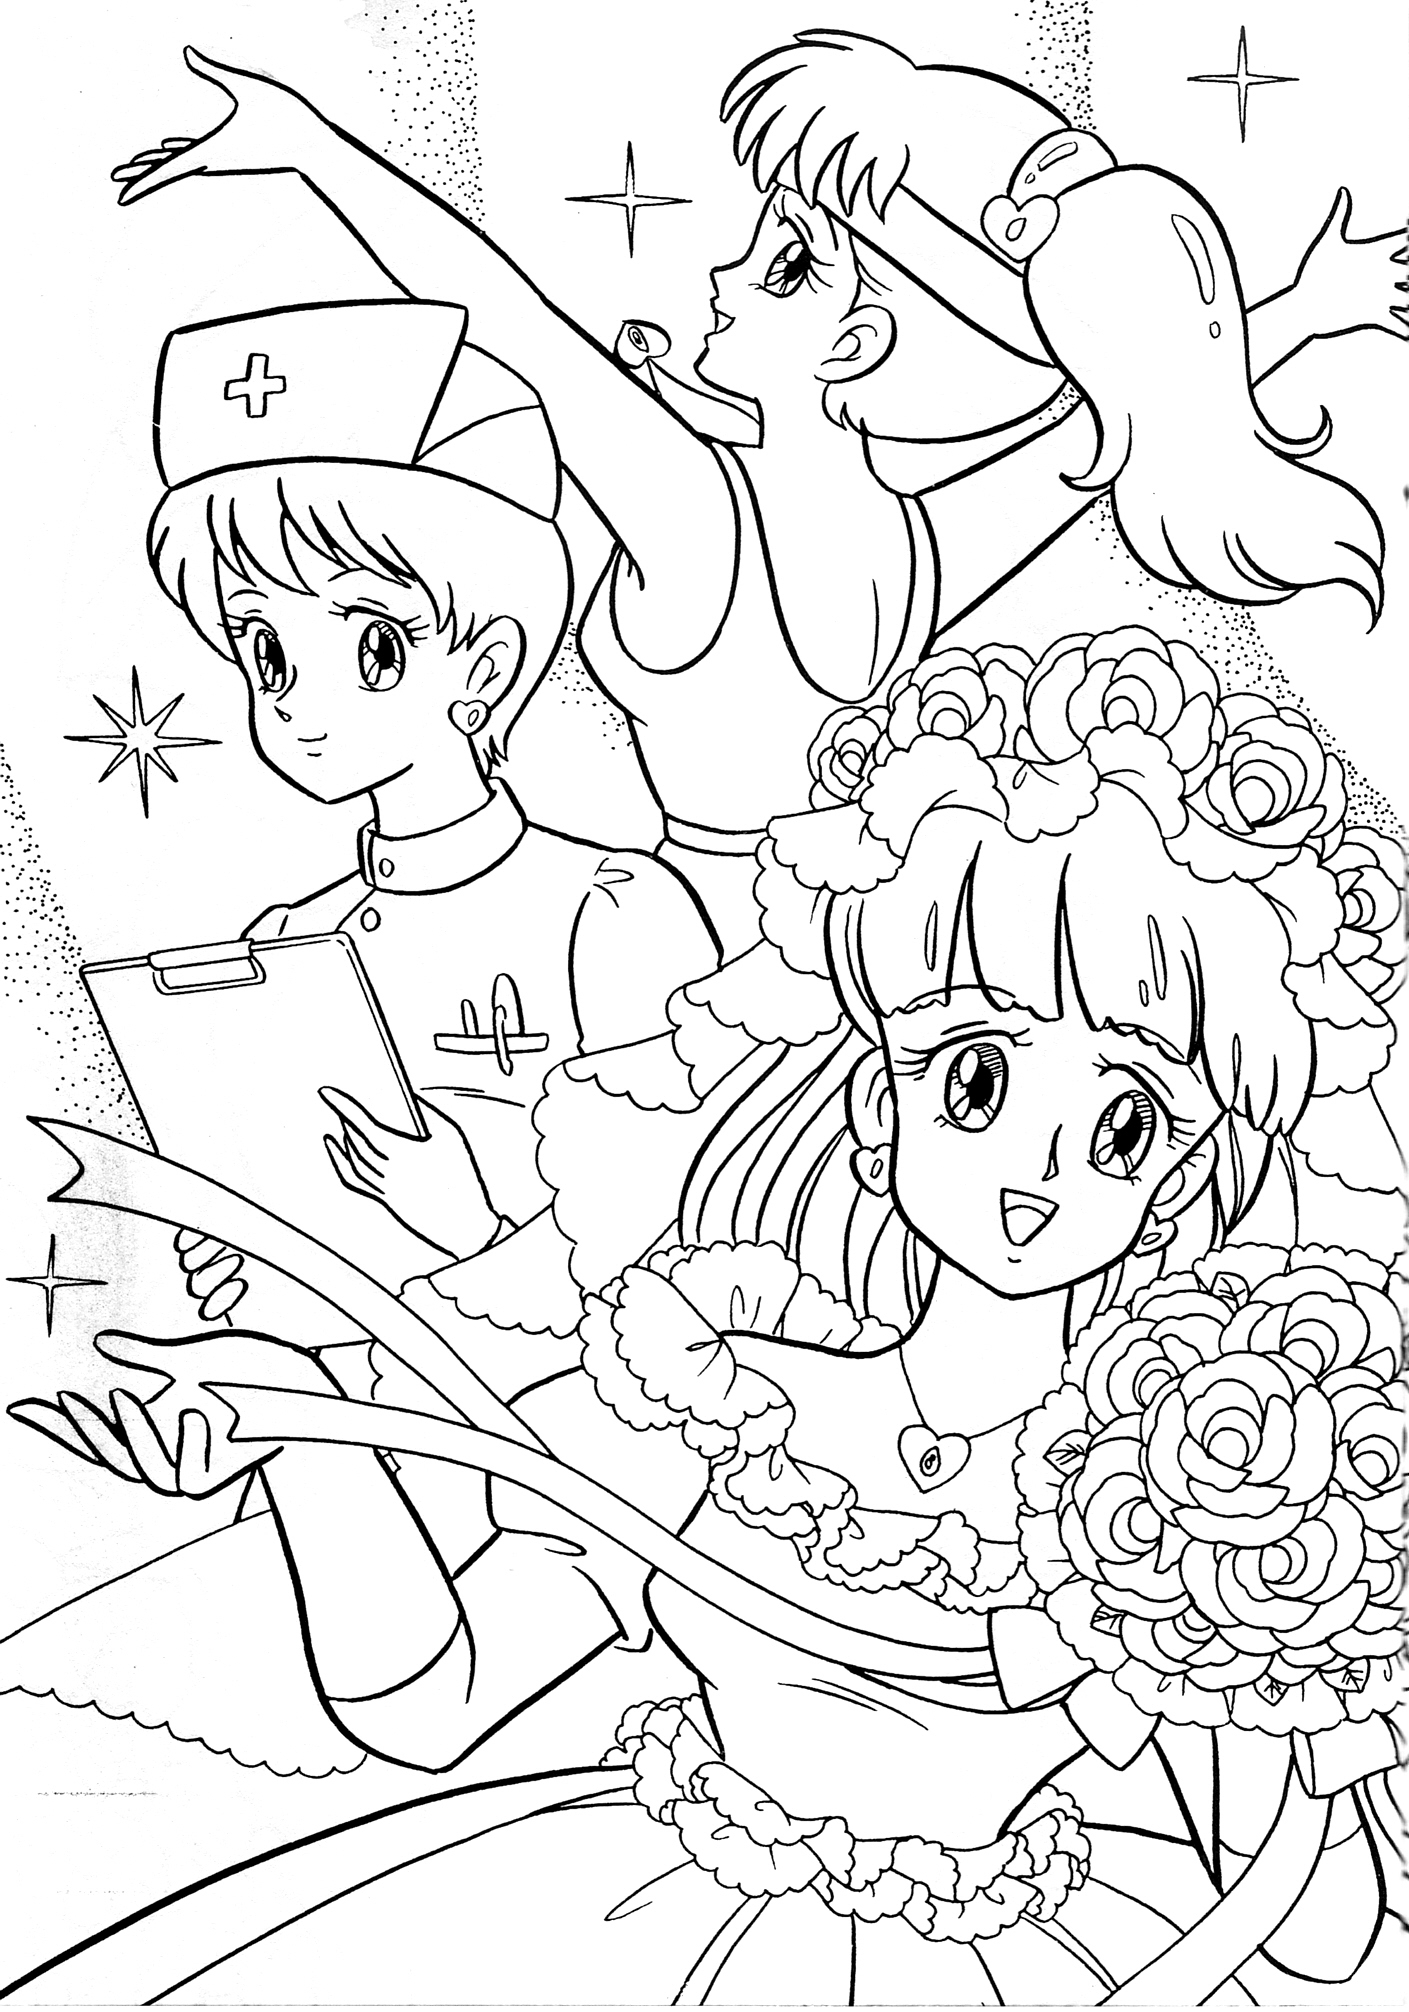 Physical Education Coloring Pages Coloring Pages Pe Coloring Pages